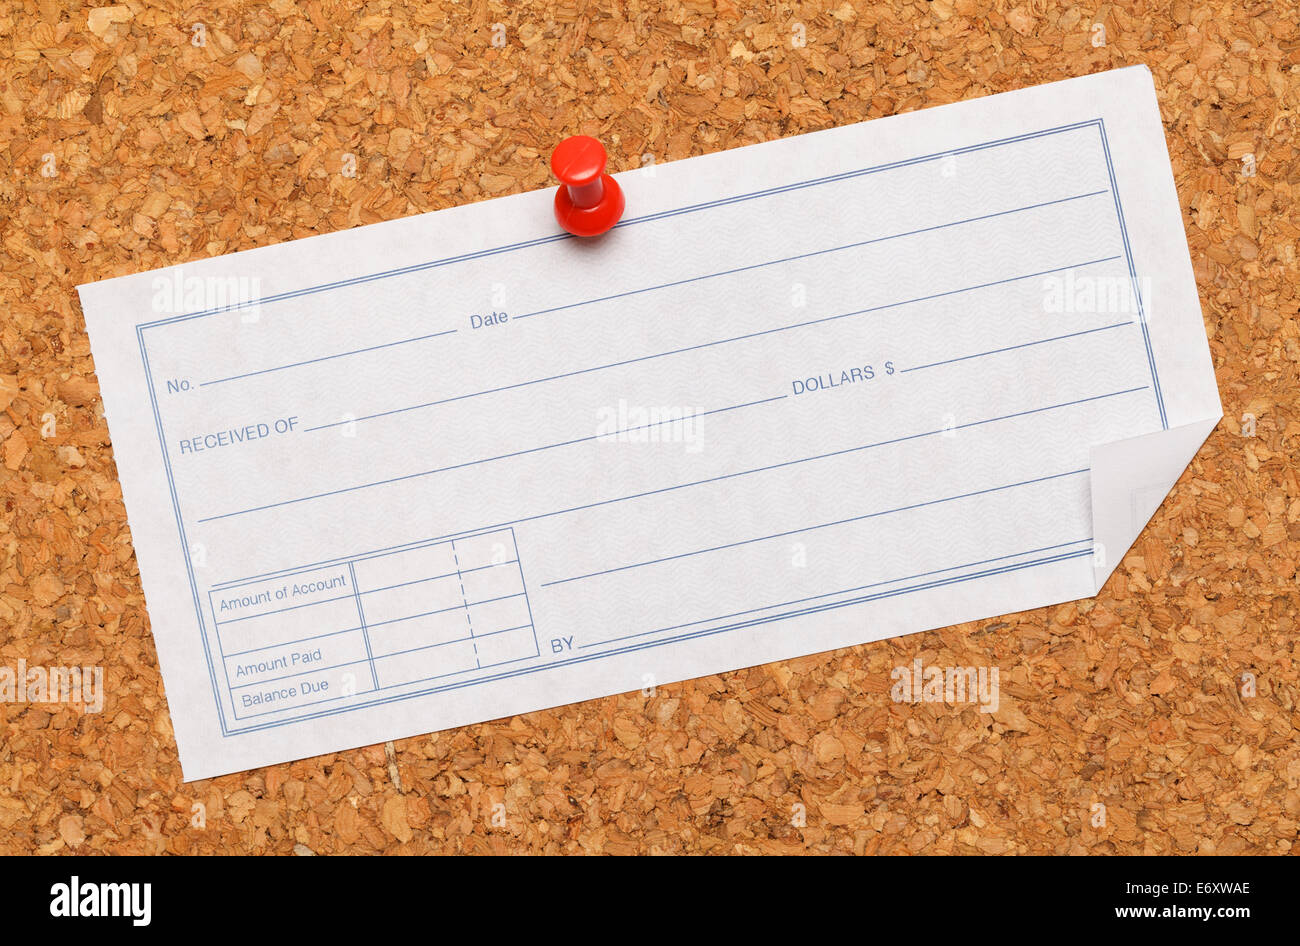 Cork Board with receipt taced on it. - Stock Image